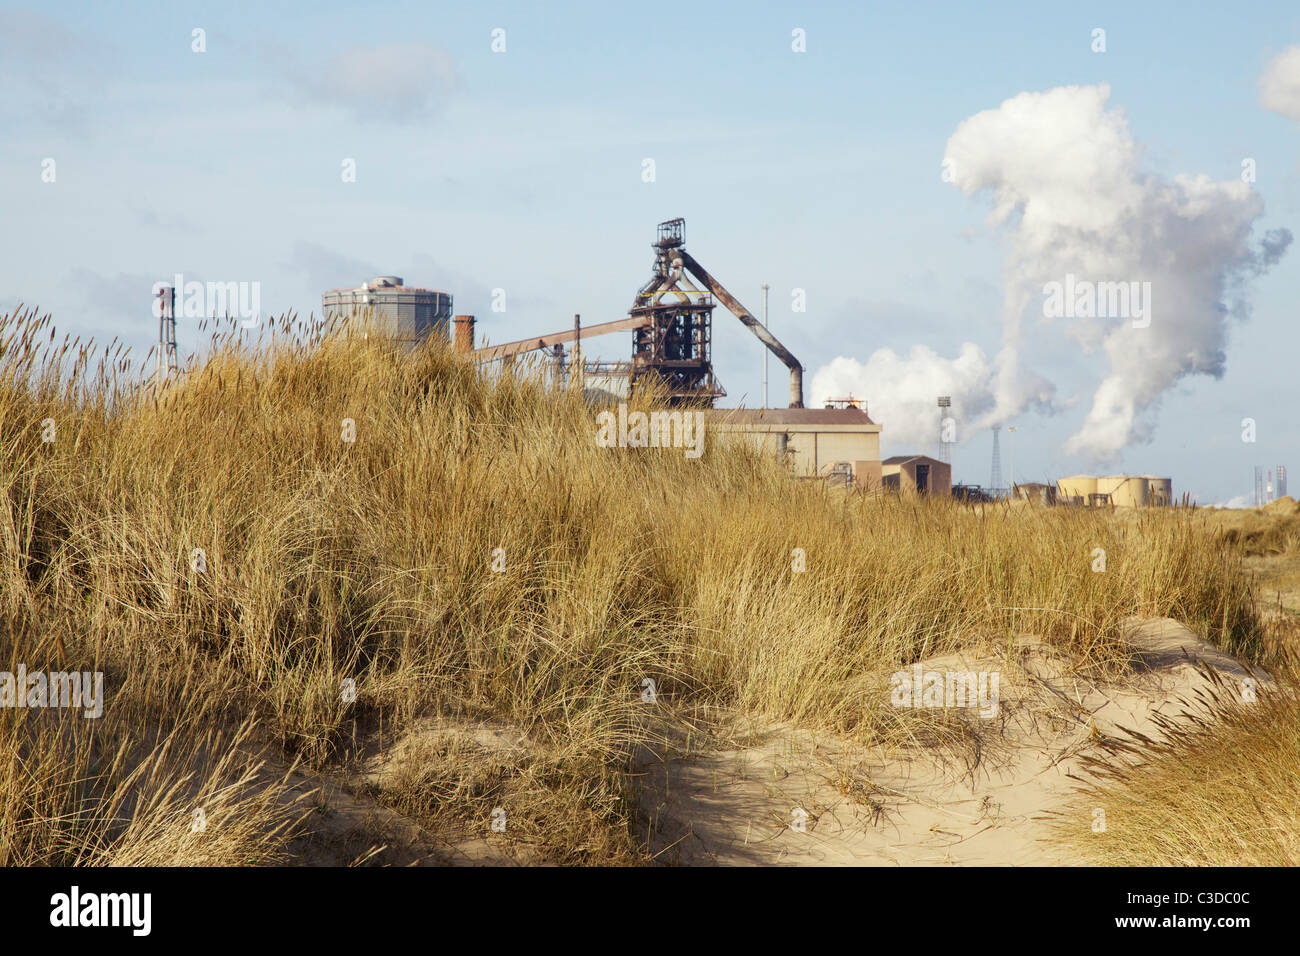 Redcar steelworks and sand dunes - Stock Image